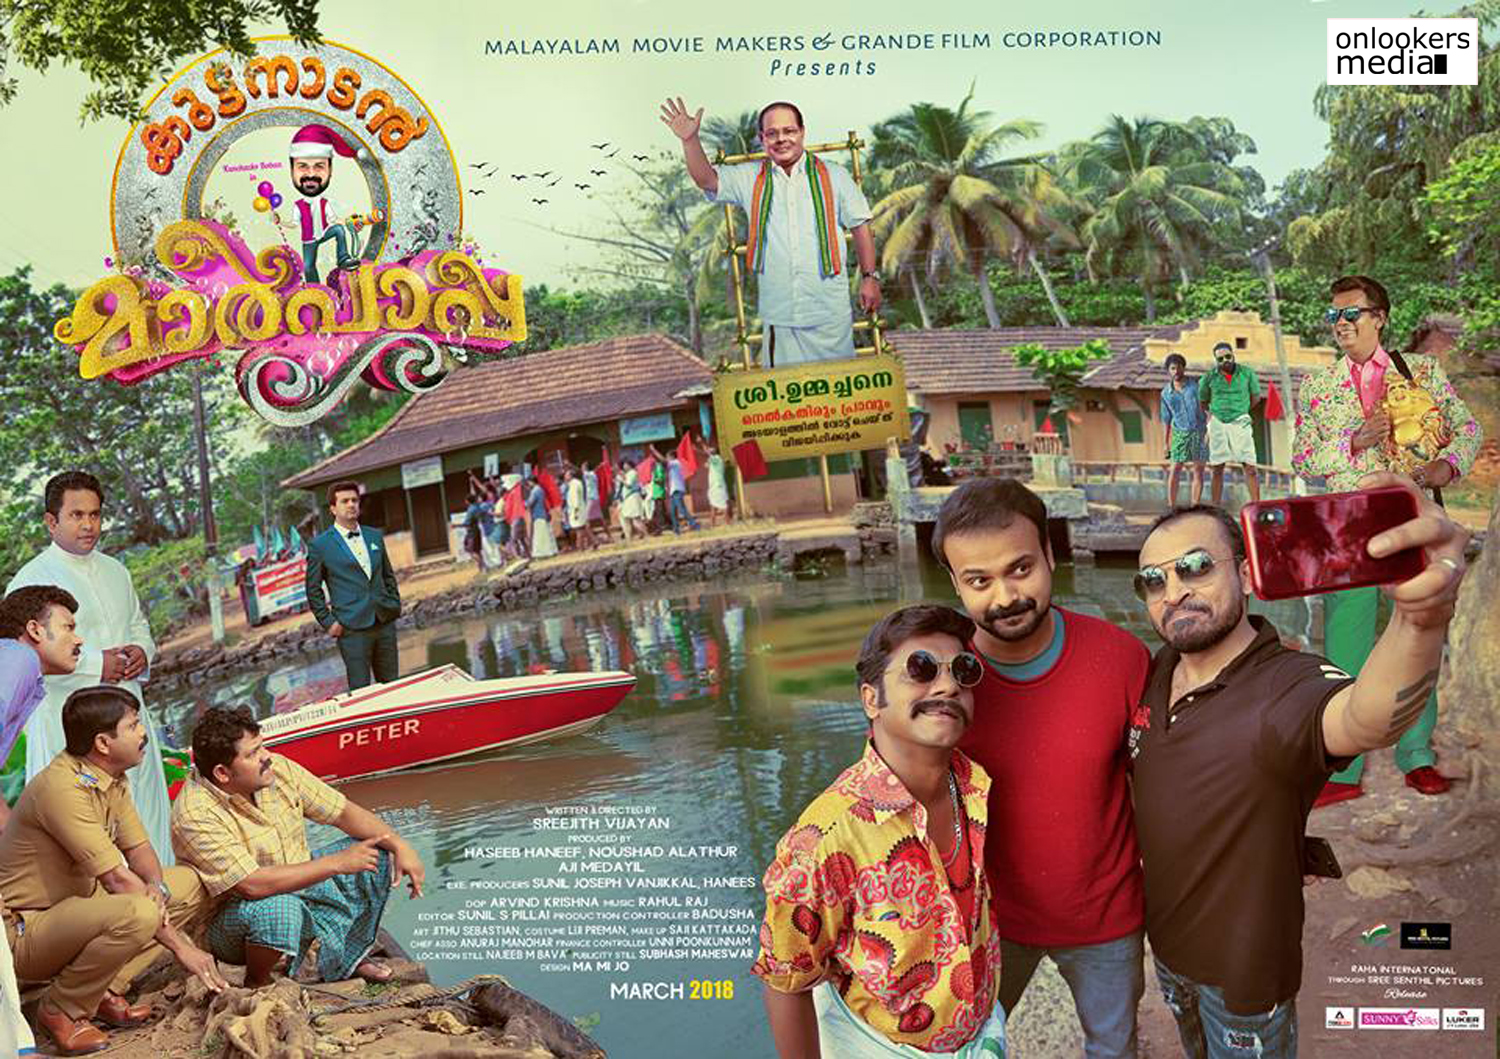 Kuttanadan Marpappa malayalam movie, Kuttanadan Marpappa movie posters, Kuttanadan Marpappa movie latest news , Kuttanadan Marpappa kunchako boban movie,kunchako boban movie news,kunchako boban's next movie,kunchako boban's upcoming movie,director sreejith vijayan